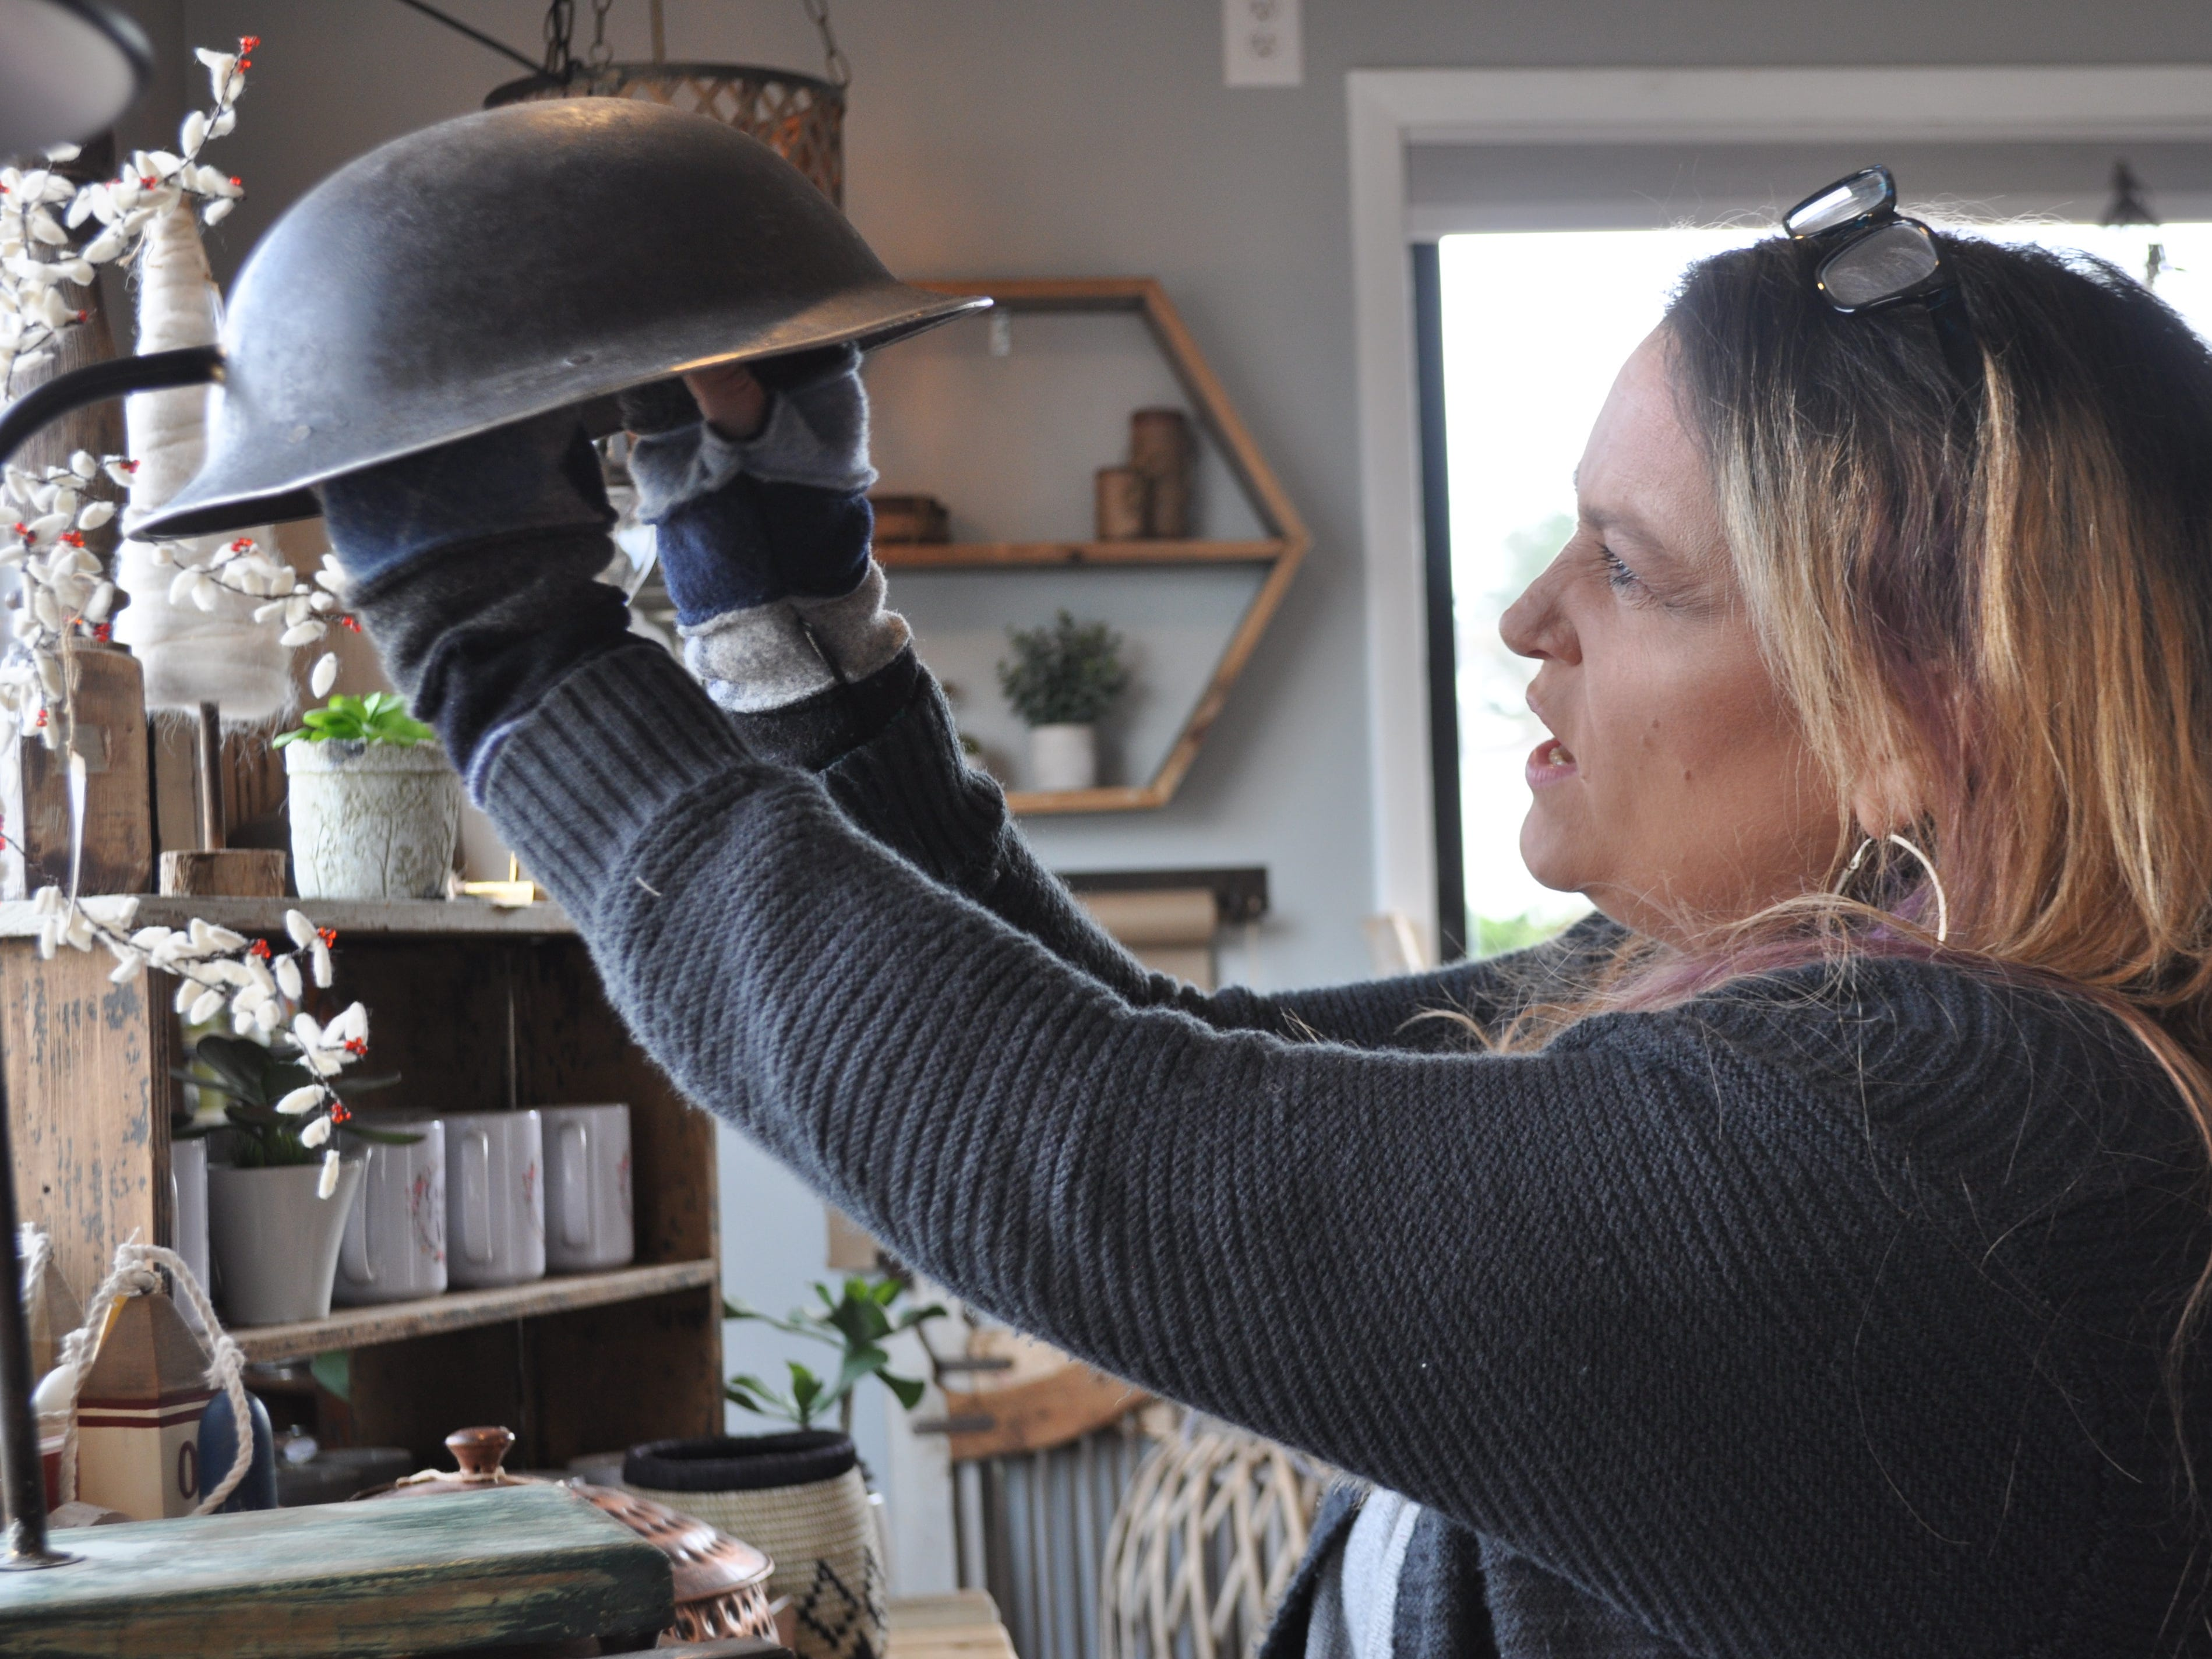 Attics of My Life store owner Ashley Abell tinkers with a handmade lamp made from an army helmet at her Selbyville store on Nov. 14, 2018.